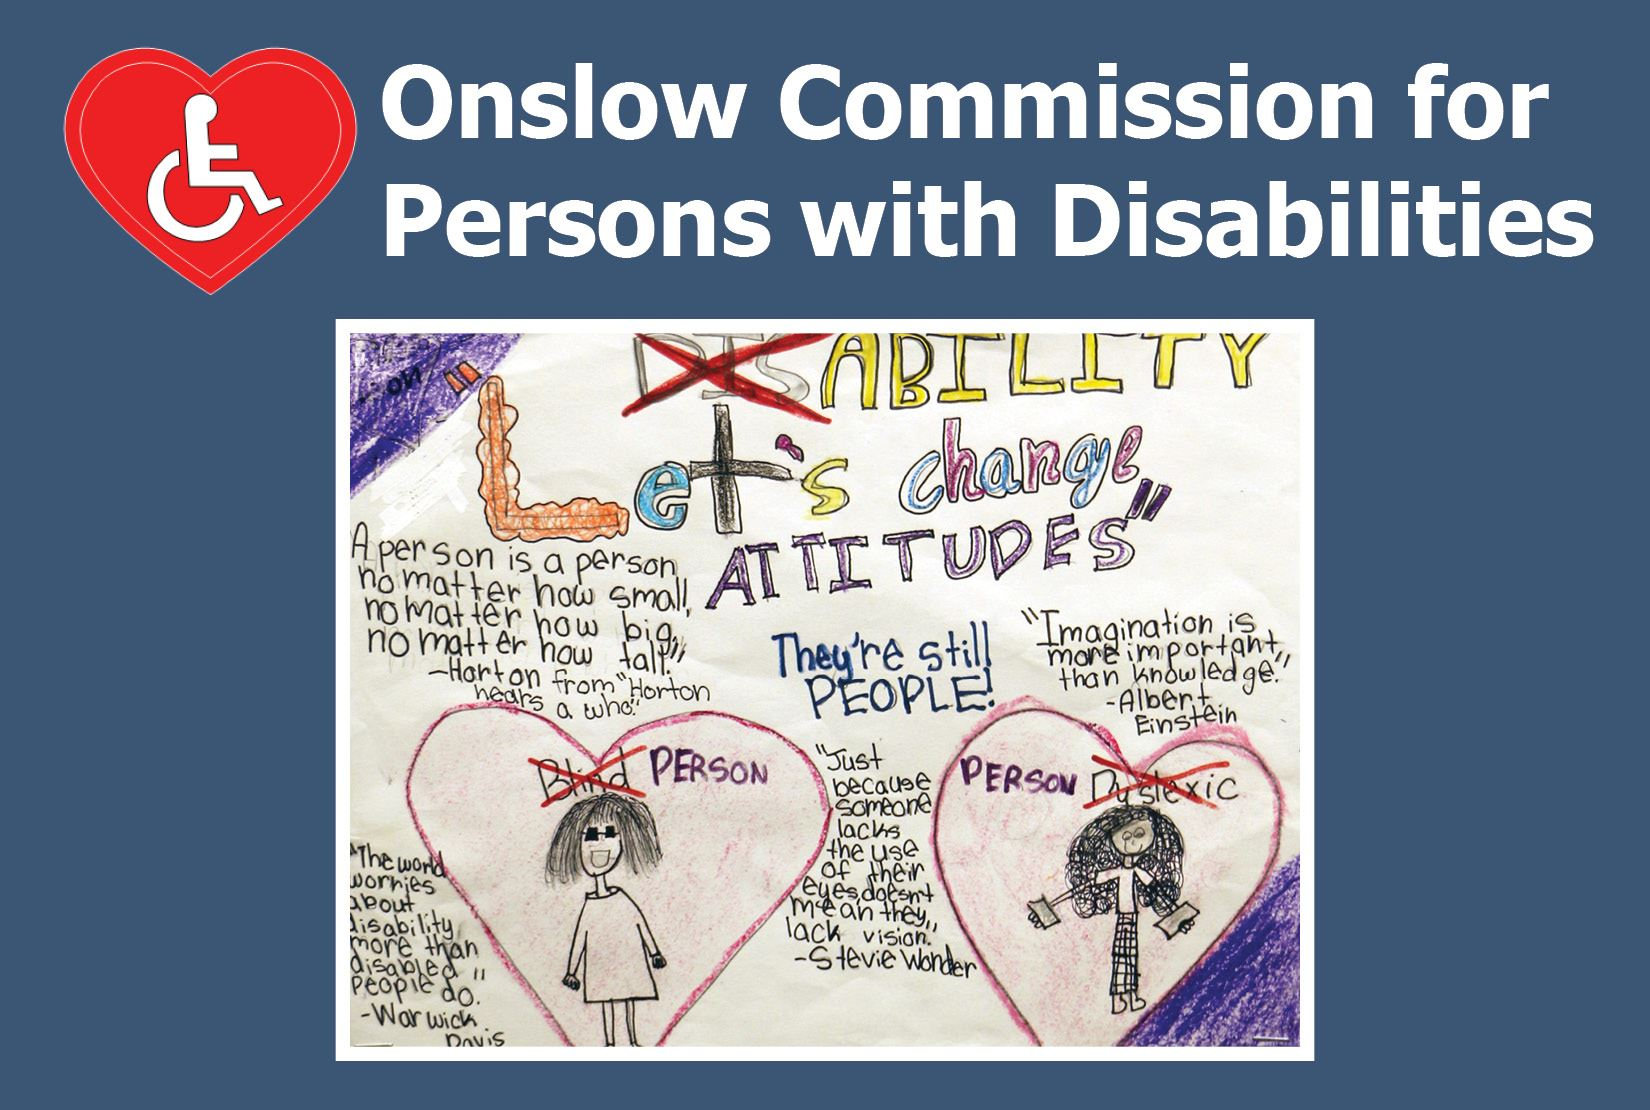 Onslow Commission for Persons with Disabilities